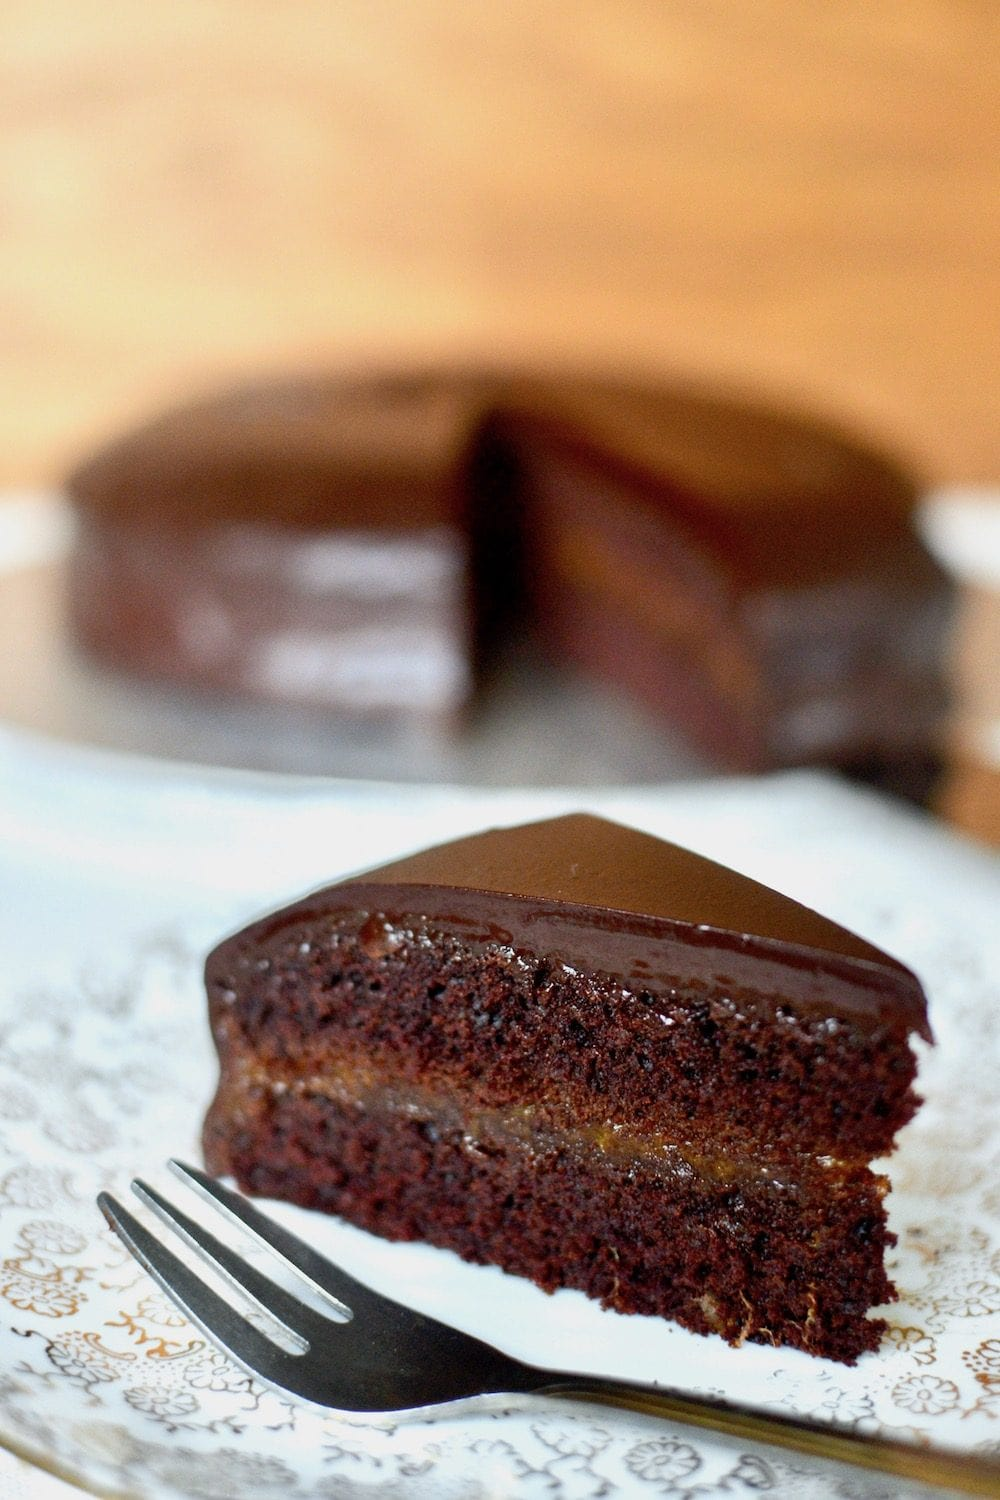 A slice of vegan sachertorte on a plate. The rest of the chocolate cake can be seen in the background.